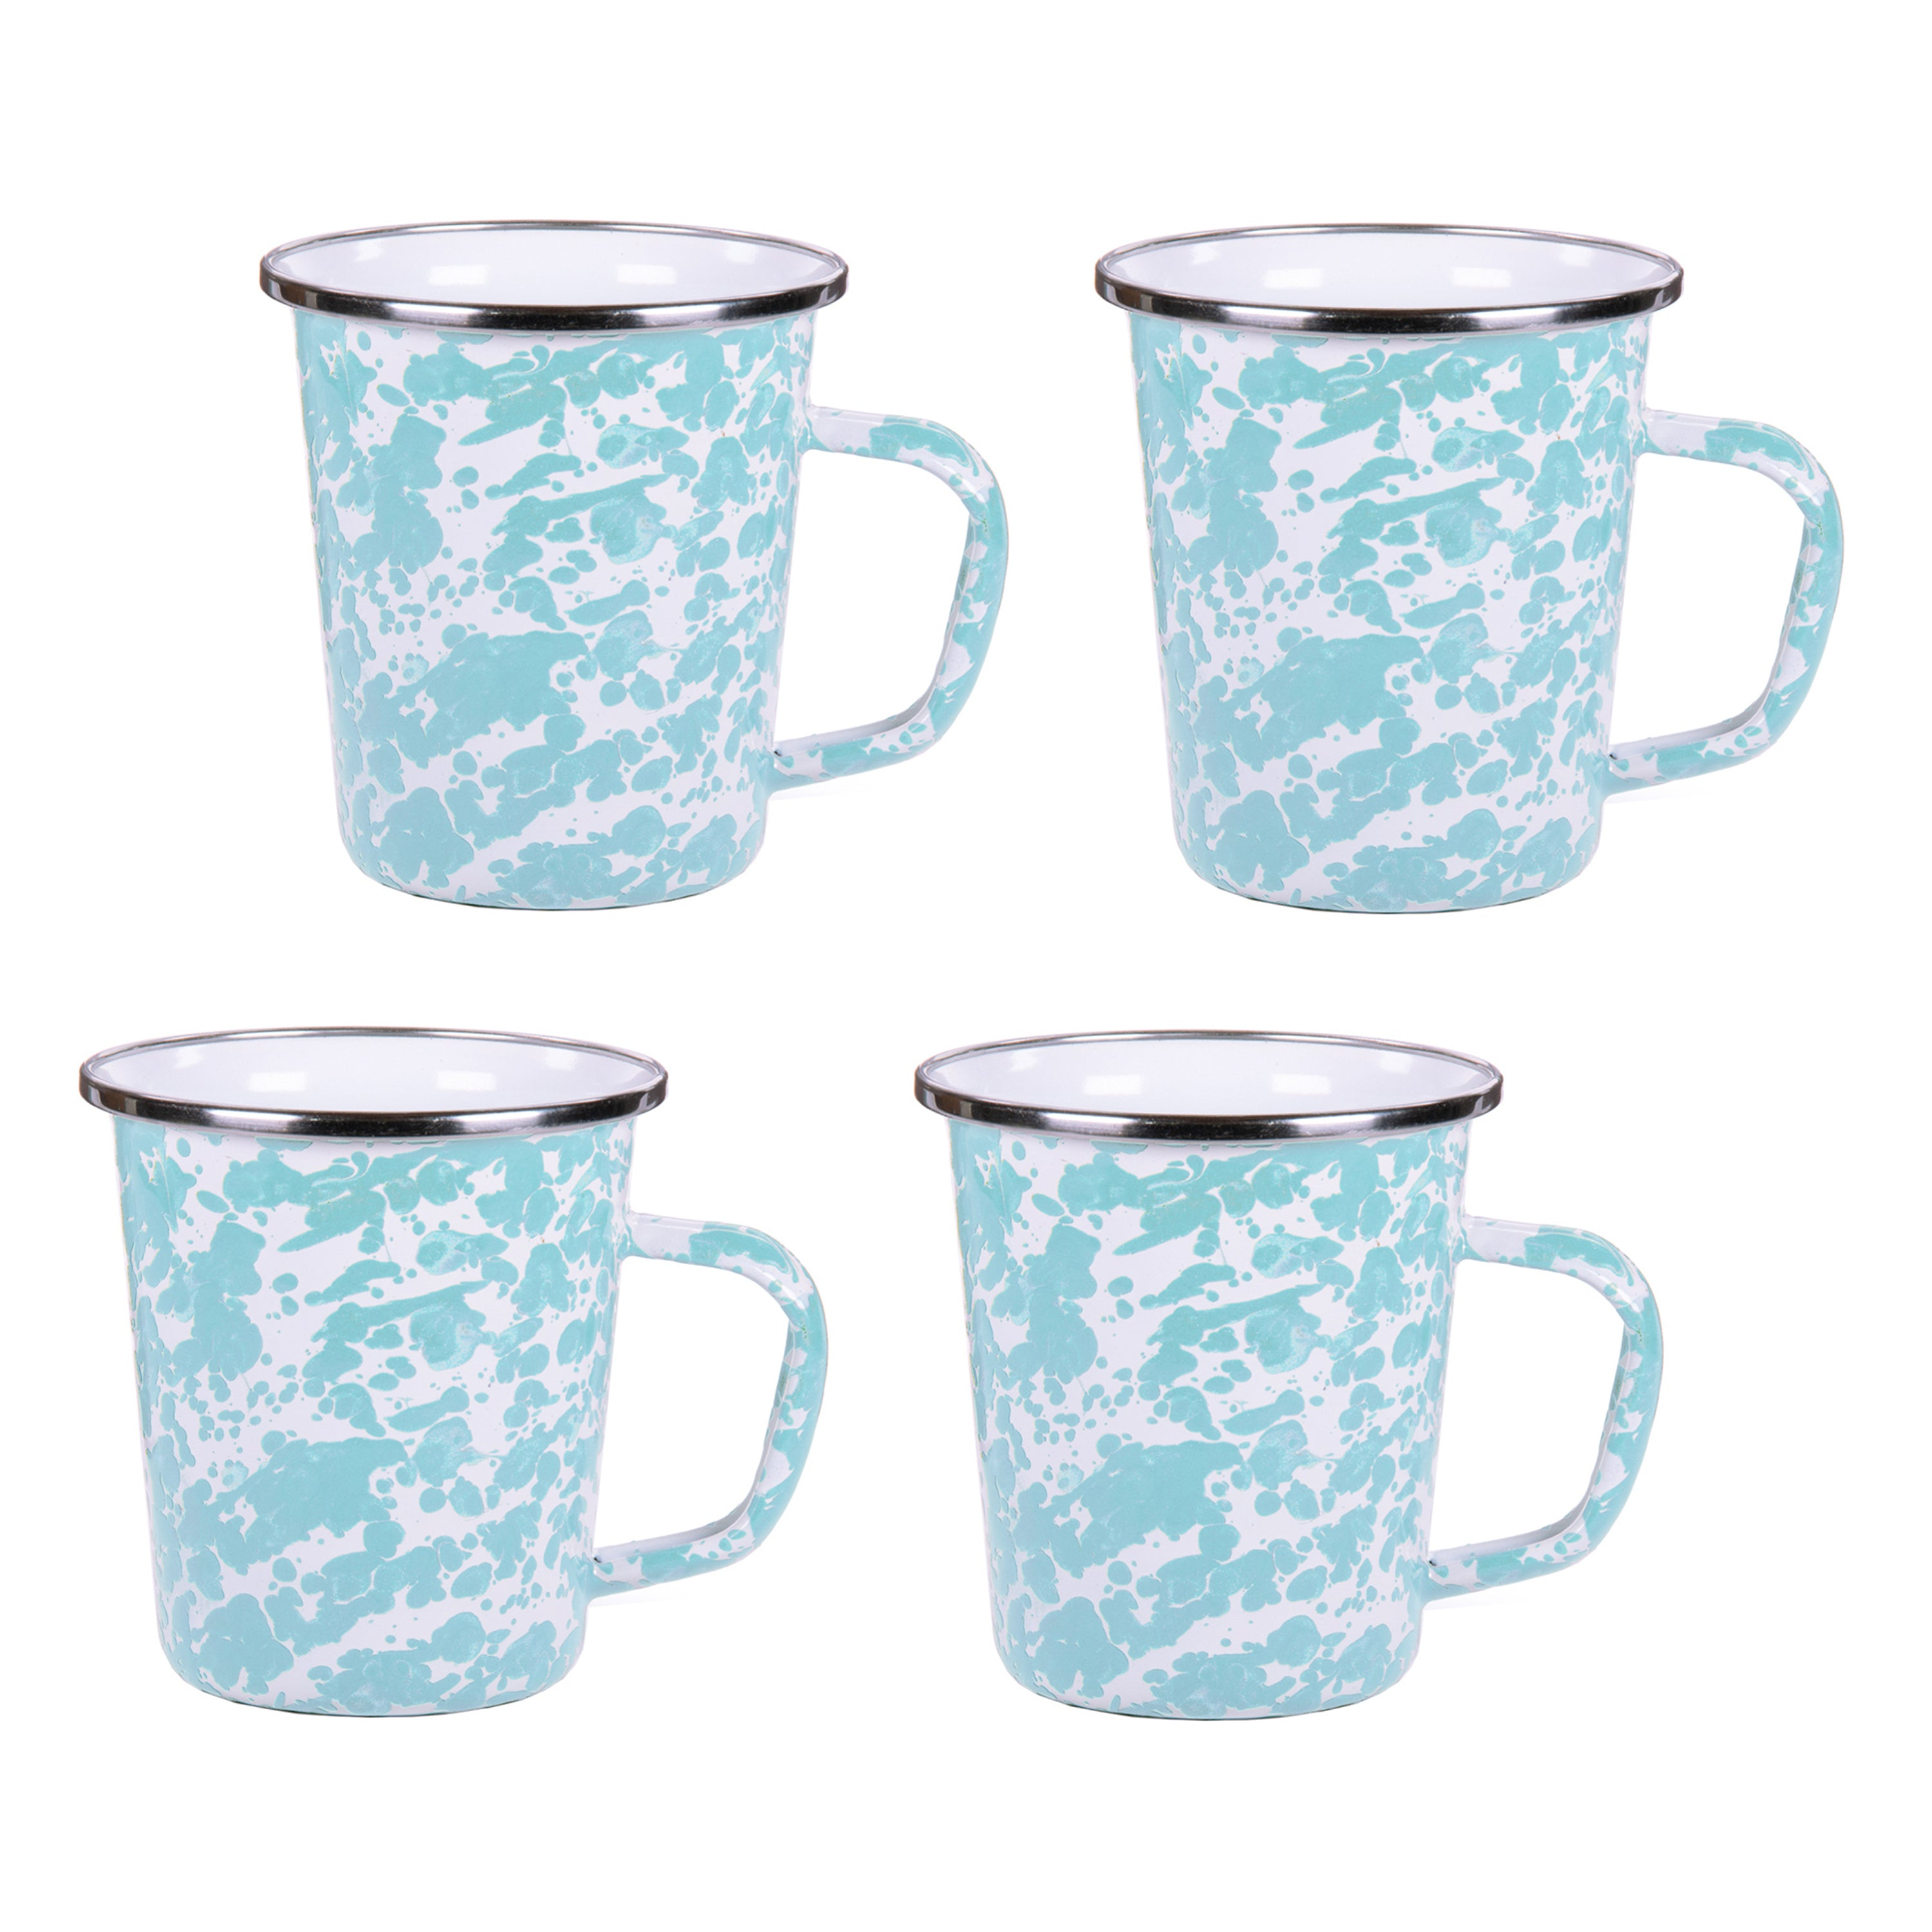 GL66S4 - Set of 4 Sea Glass Latte Mugs Image 1